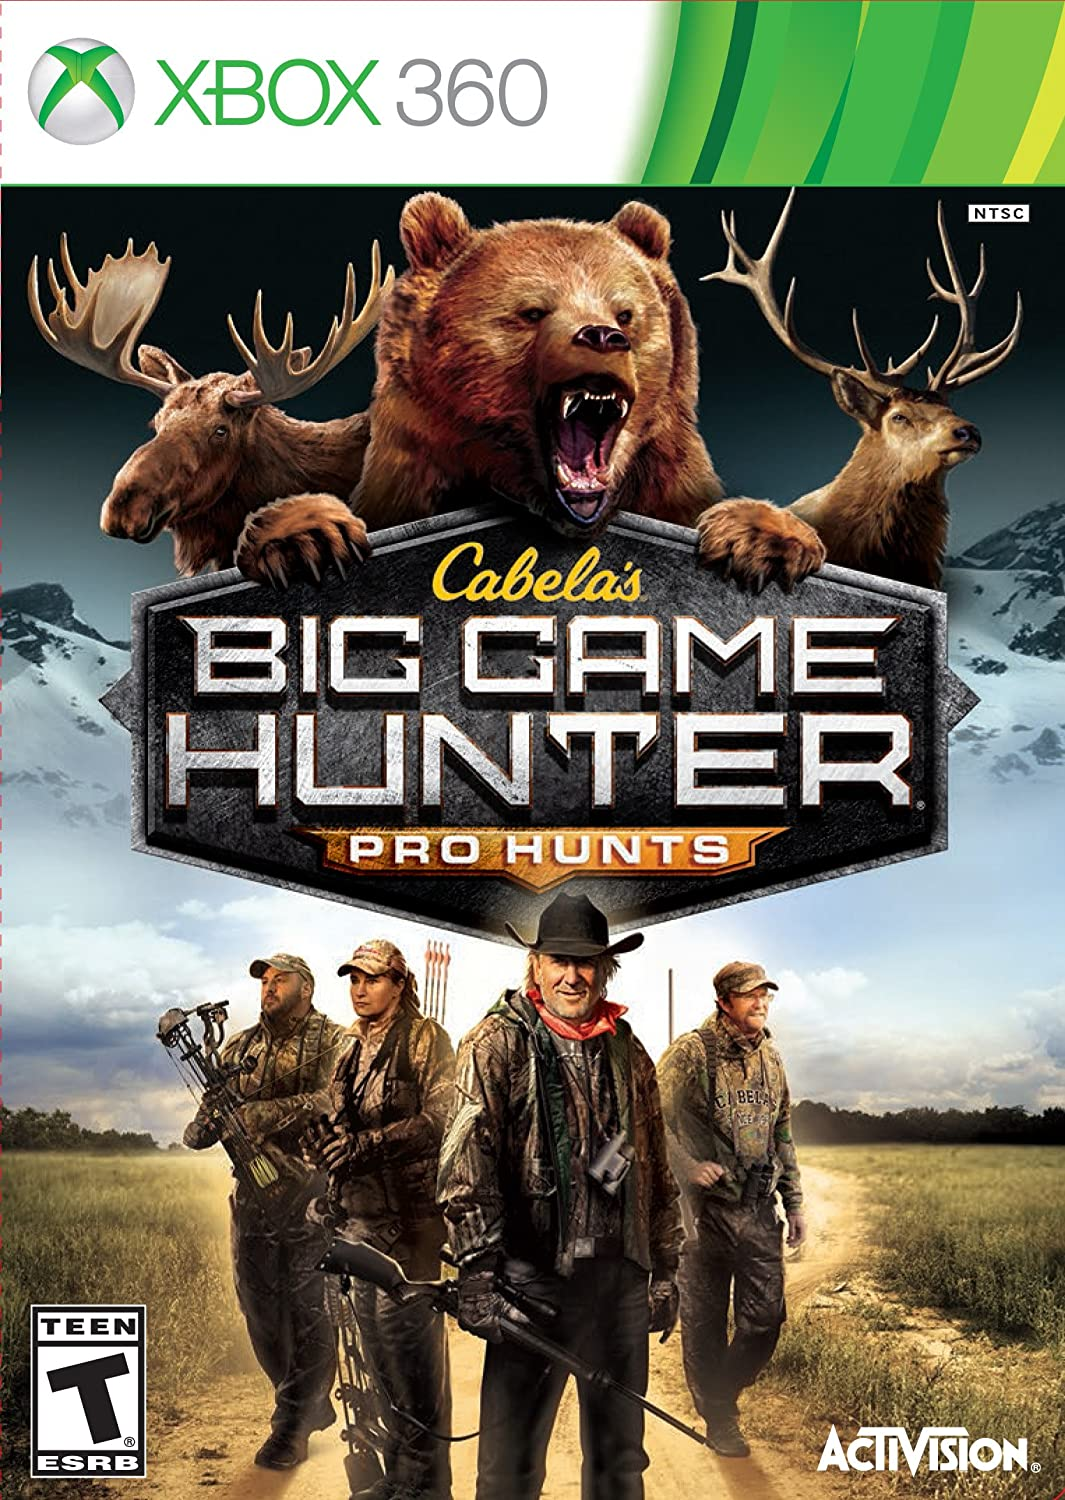 Cabelas: Big Game Hunter Pro Hunts lucky john croco spoon big game mission 24гр 004